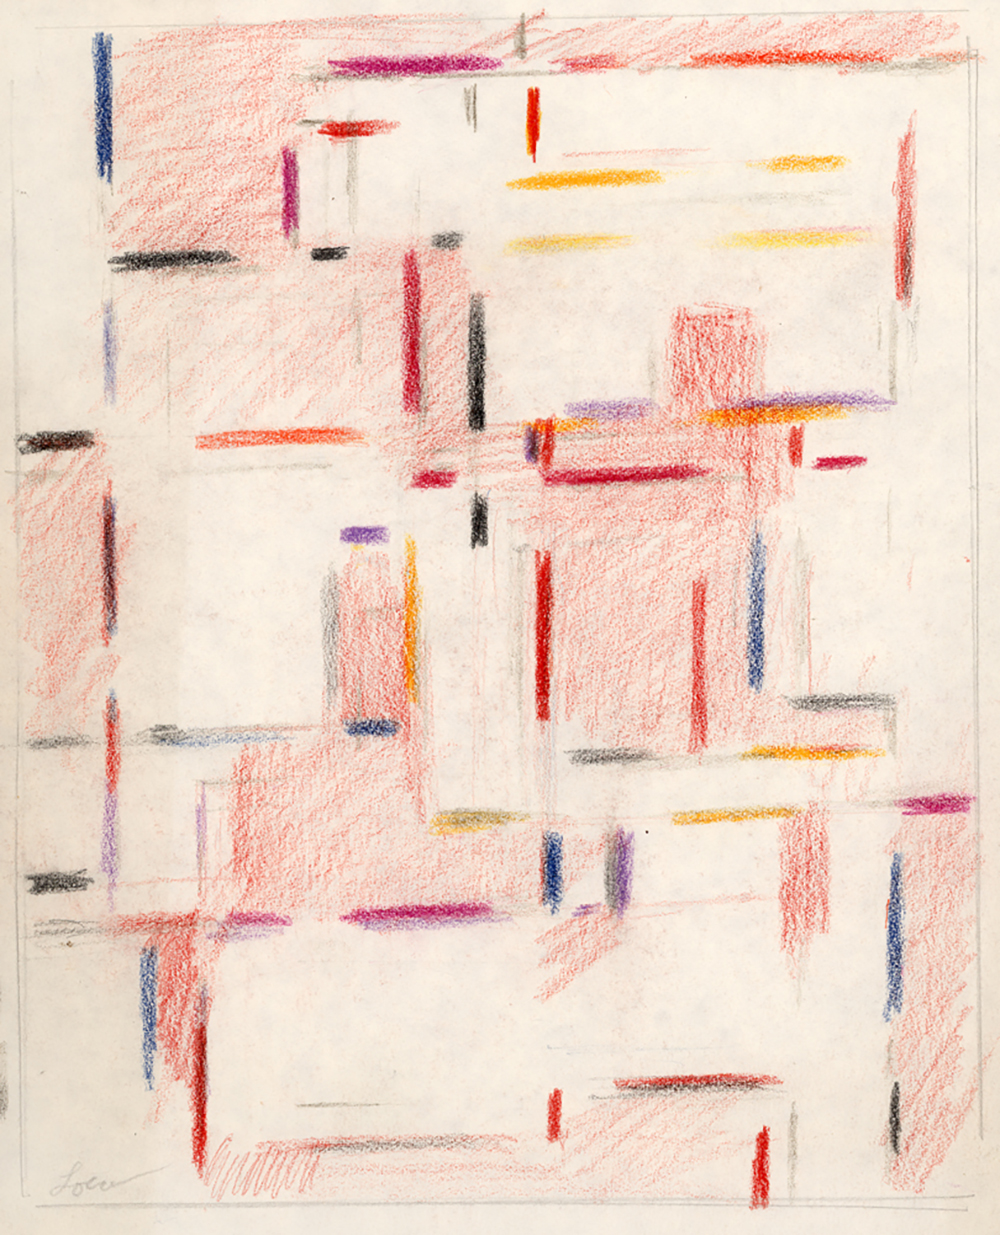 Color Form, No. 42,   Pastel on paper c. 1957, 8 7/8 x 7 1/4 inches